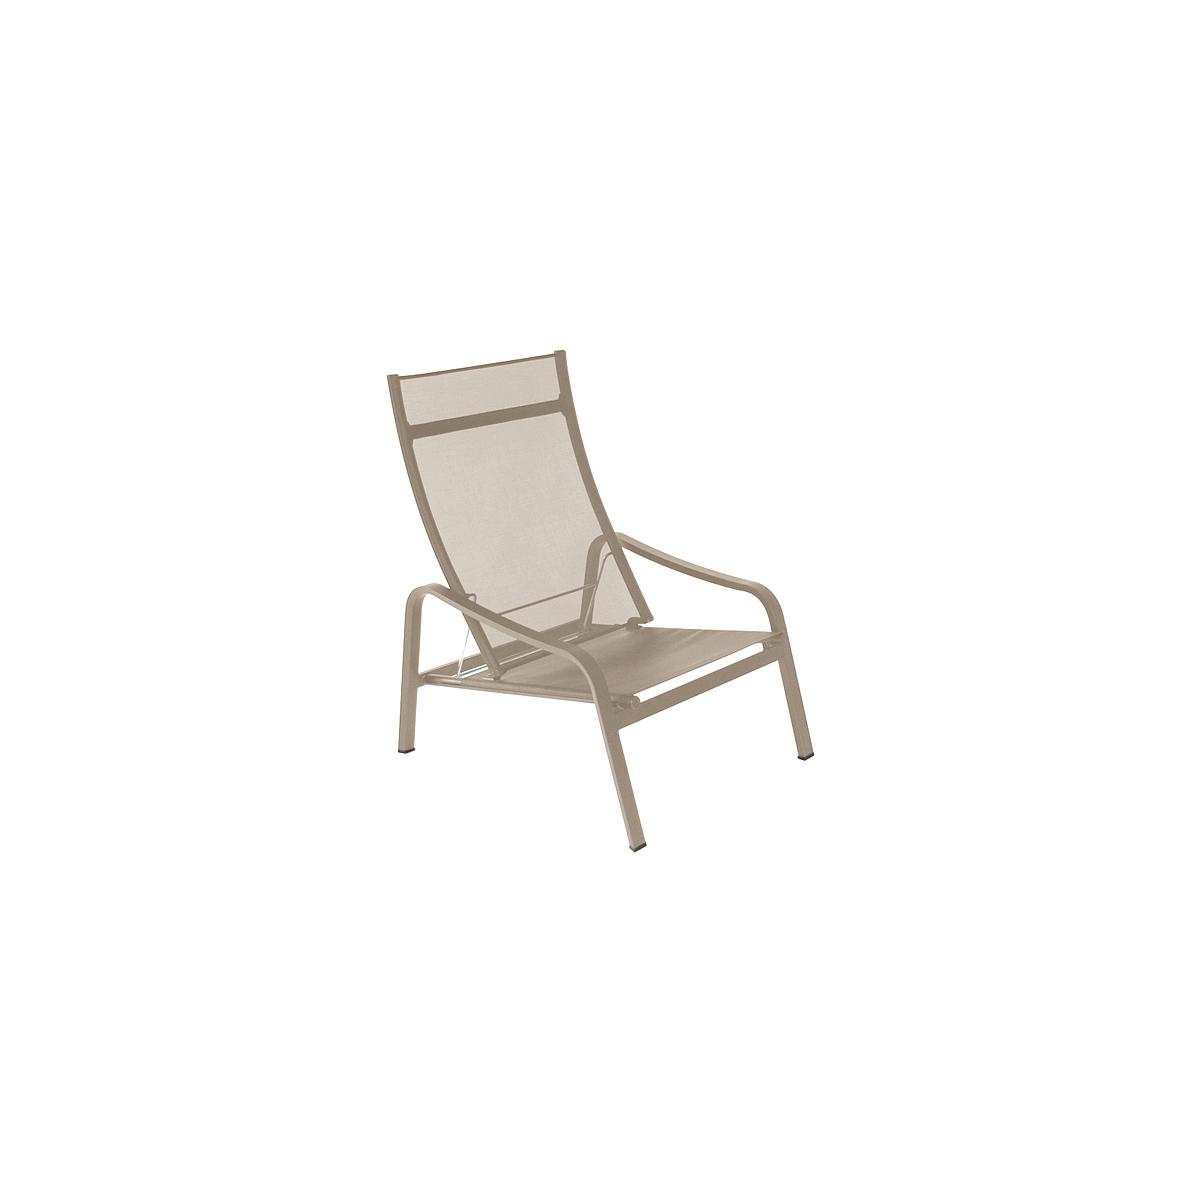 ALIZE by Fermob Fauteuil muscade